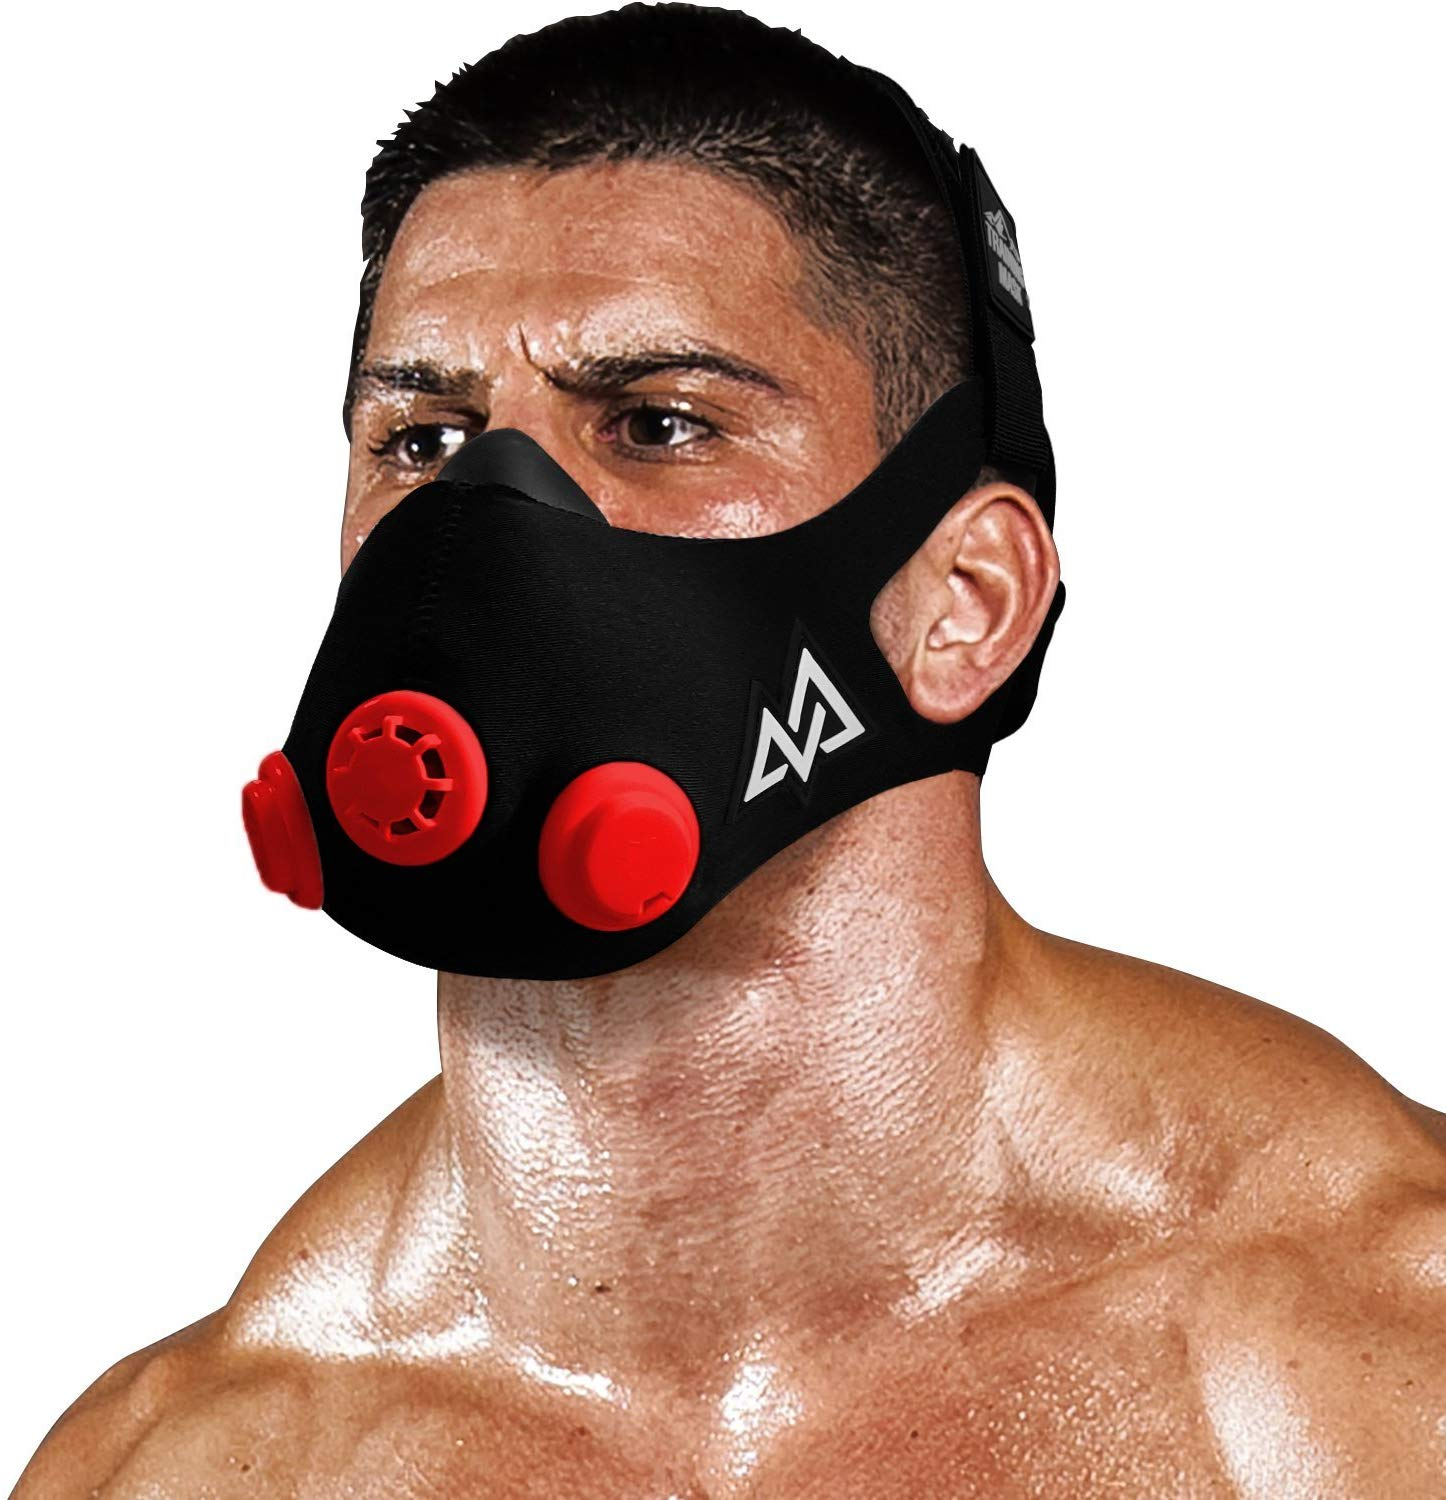 SMALL ELEVATION Training Mask 2.0 High Altitude MMA Fitness